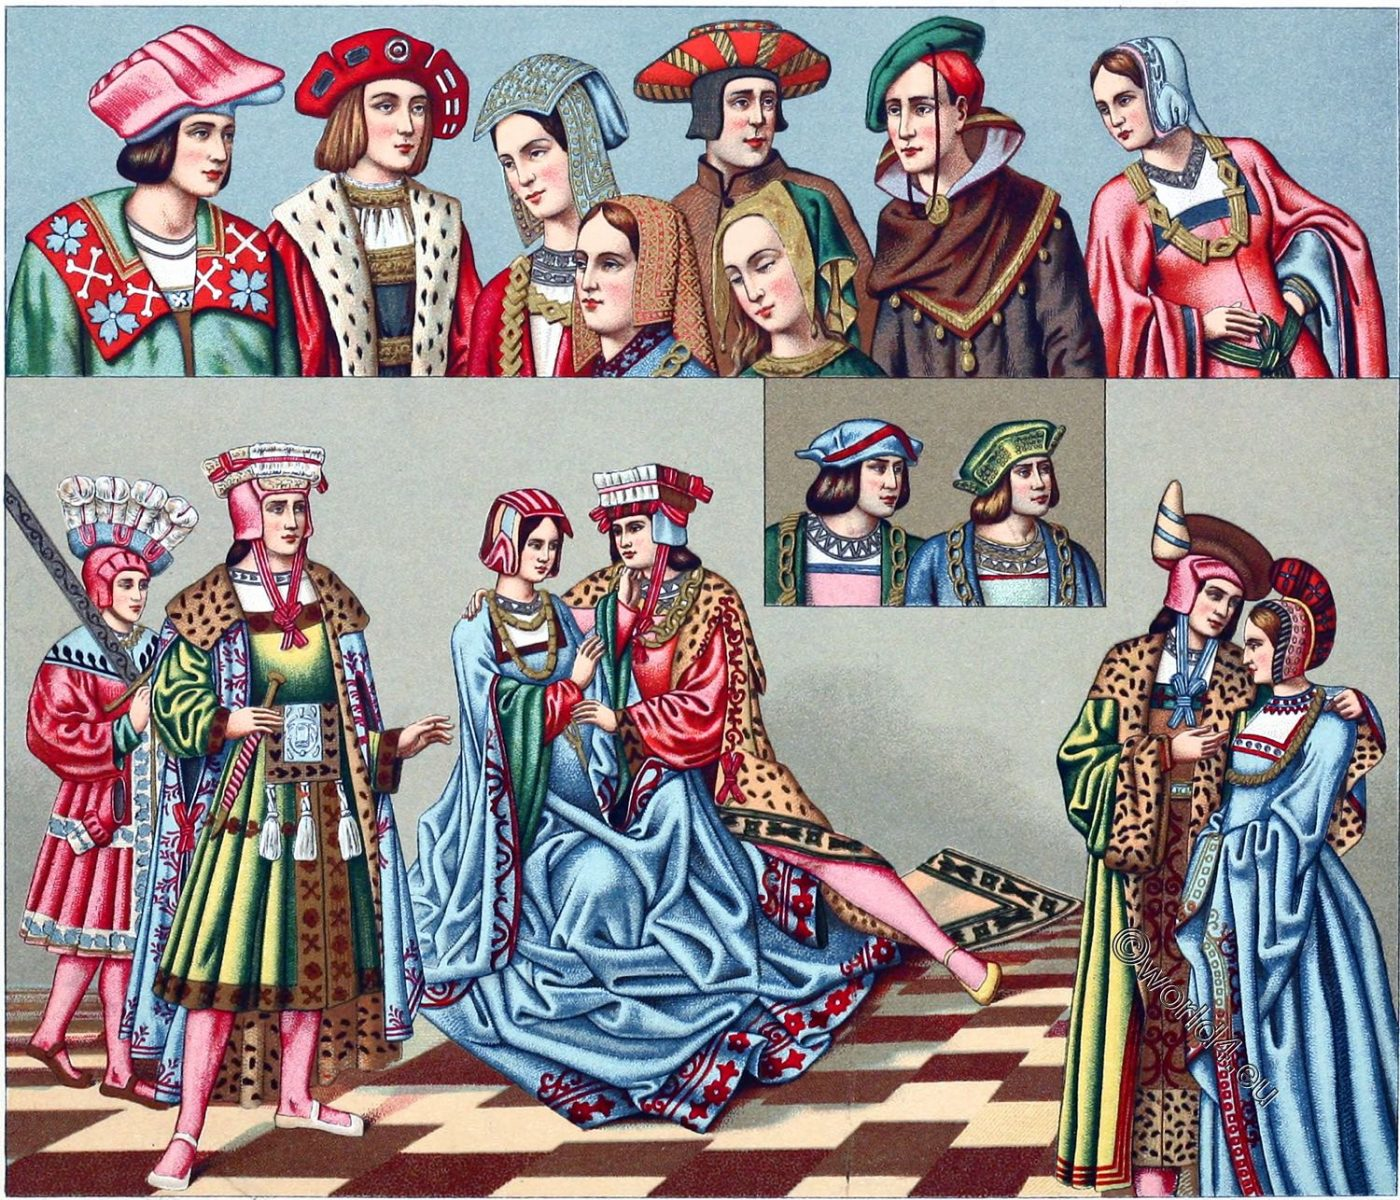 Fashion, Middle ages, Headdresses, Clothing, dress, costumes,